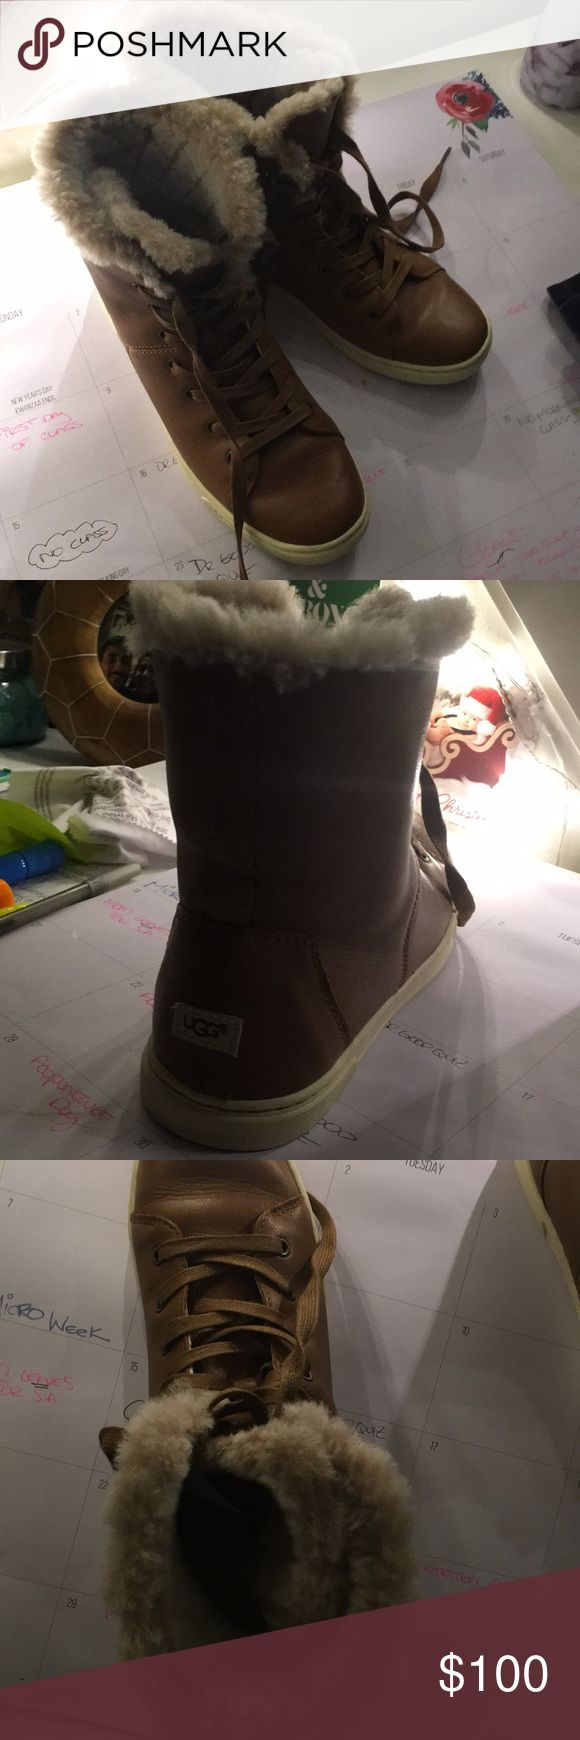 Ugg Fur Lined Sneaker So warm and cozy chestnut ugg sneaker UGG Shoes Sneakers